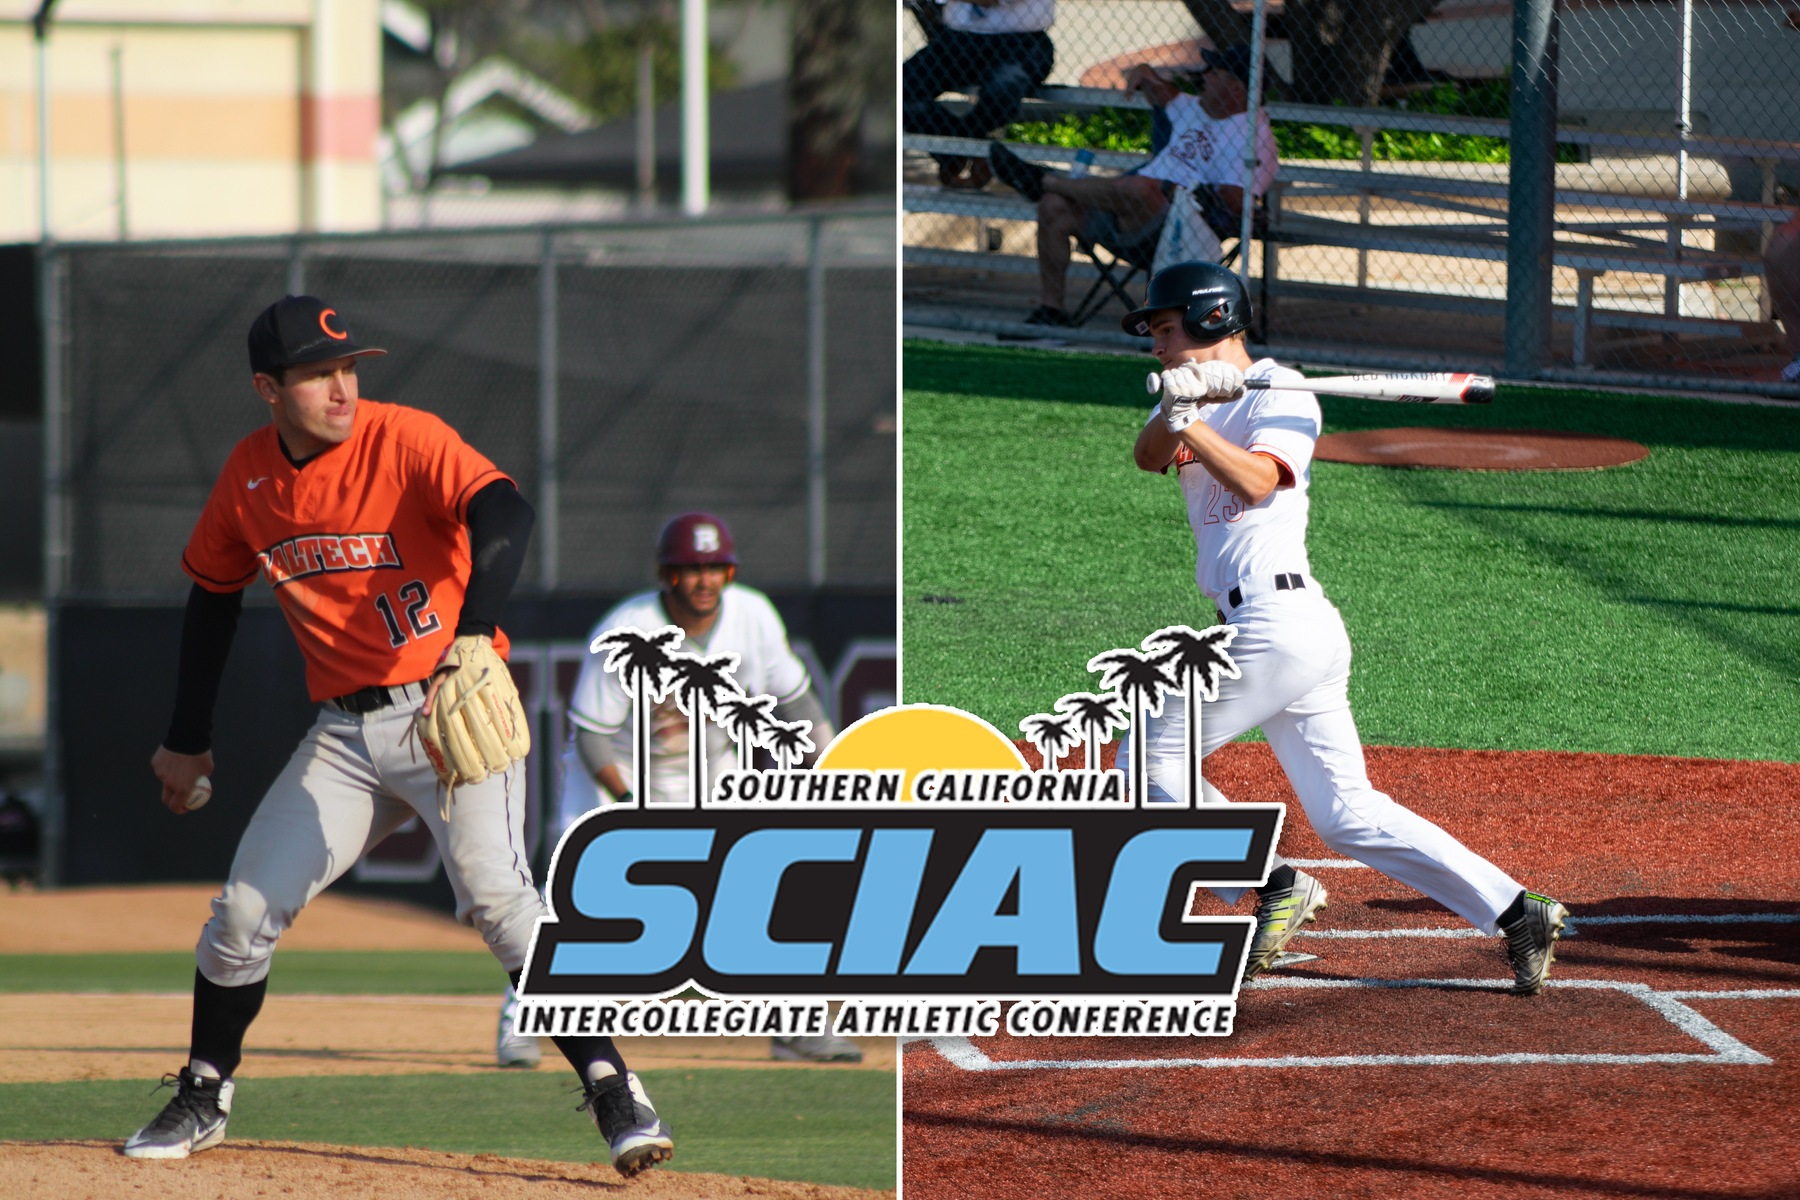 Perry, Popken Named to Second Team All-SCIAC